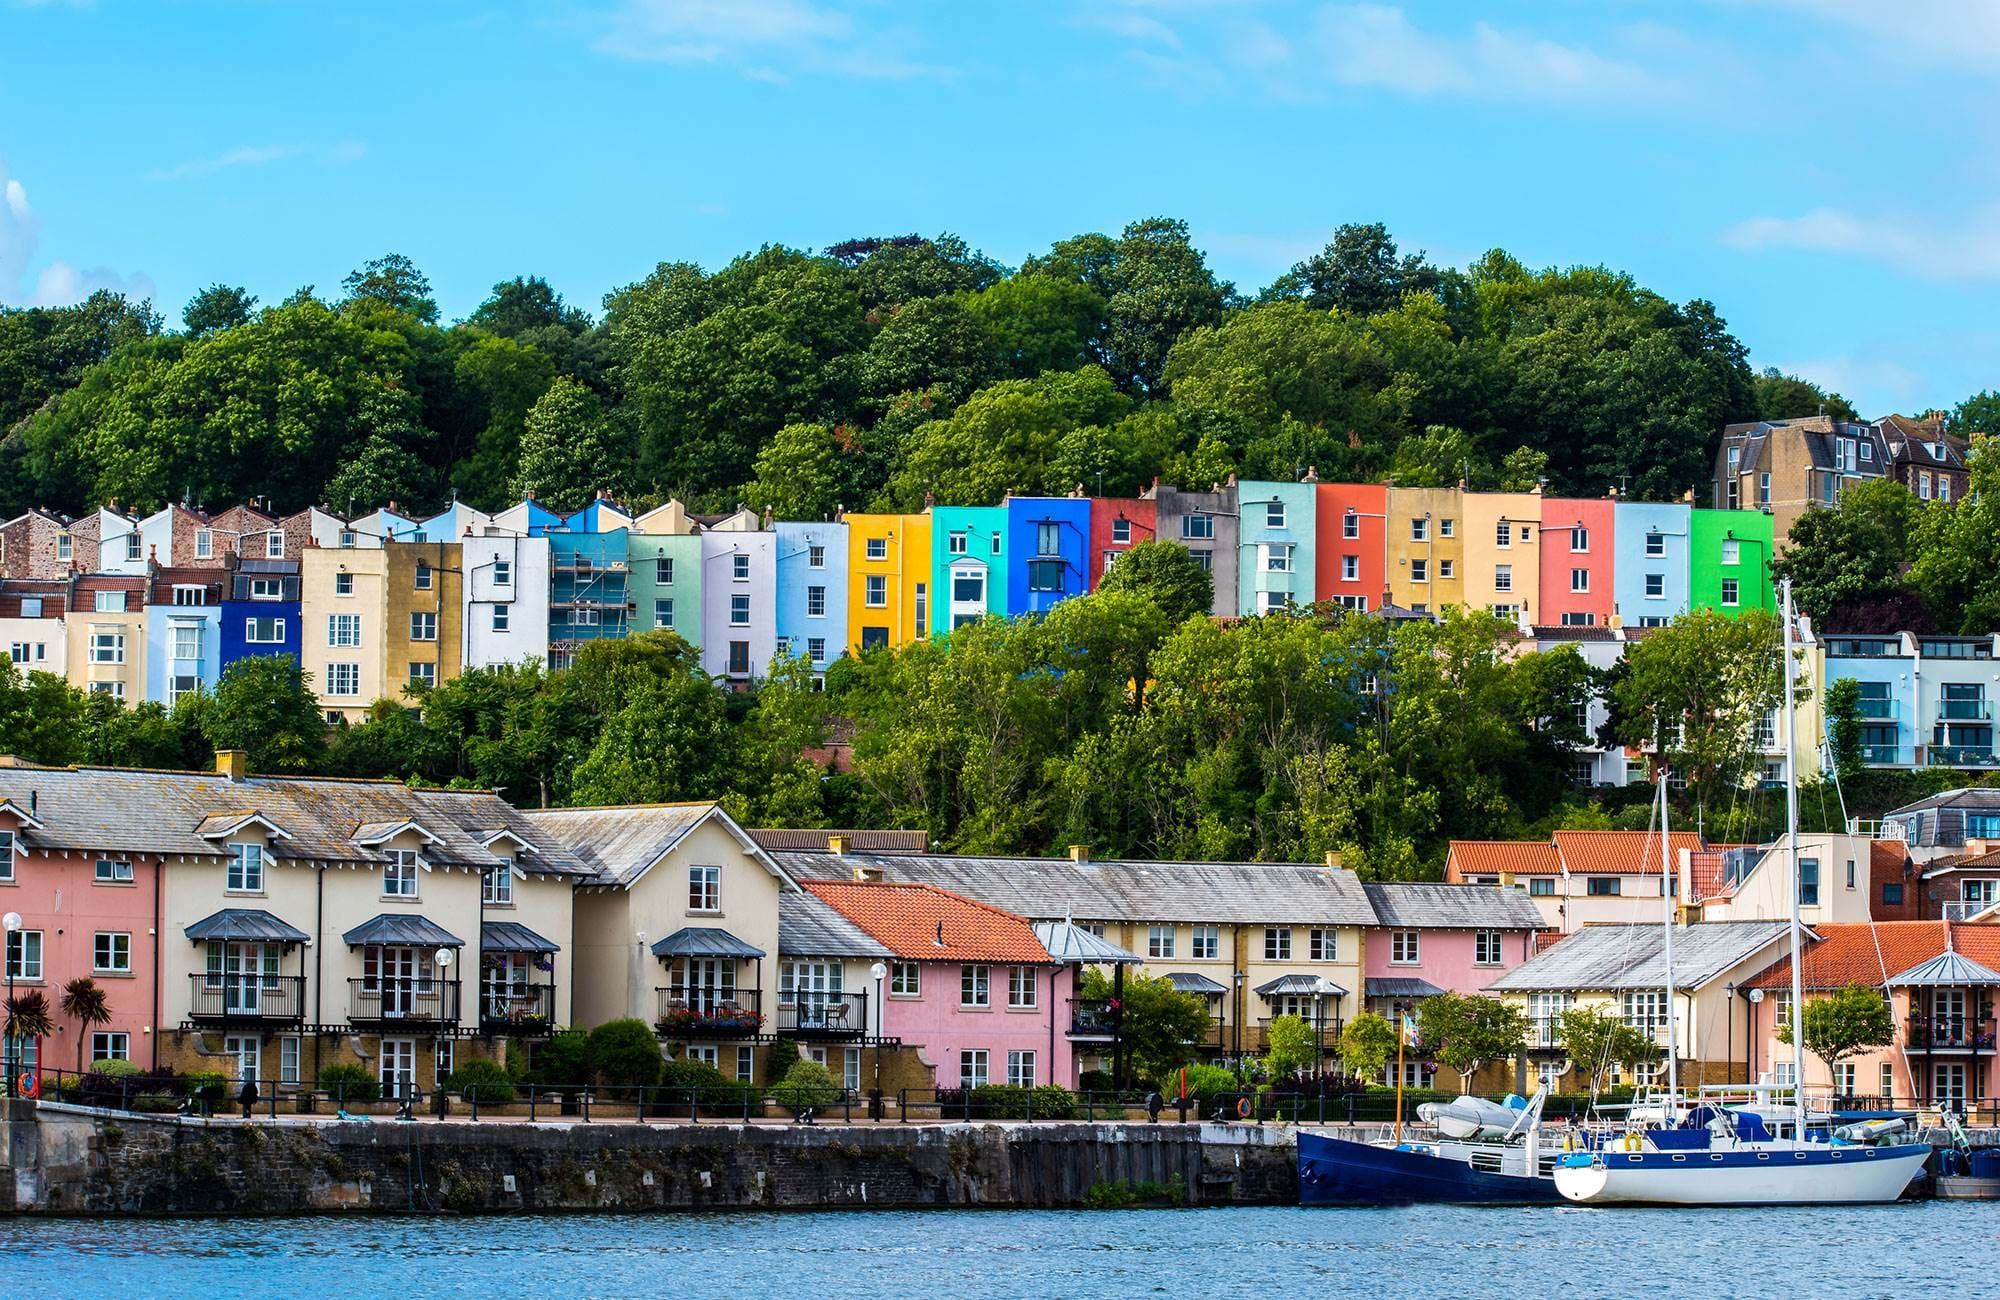 Bristol England Colored Houses